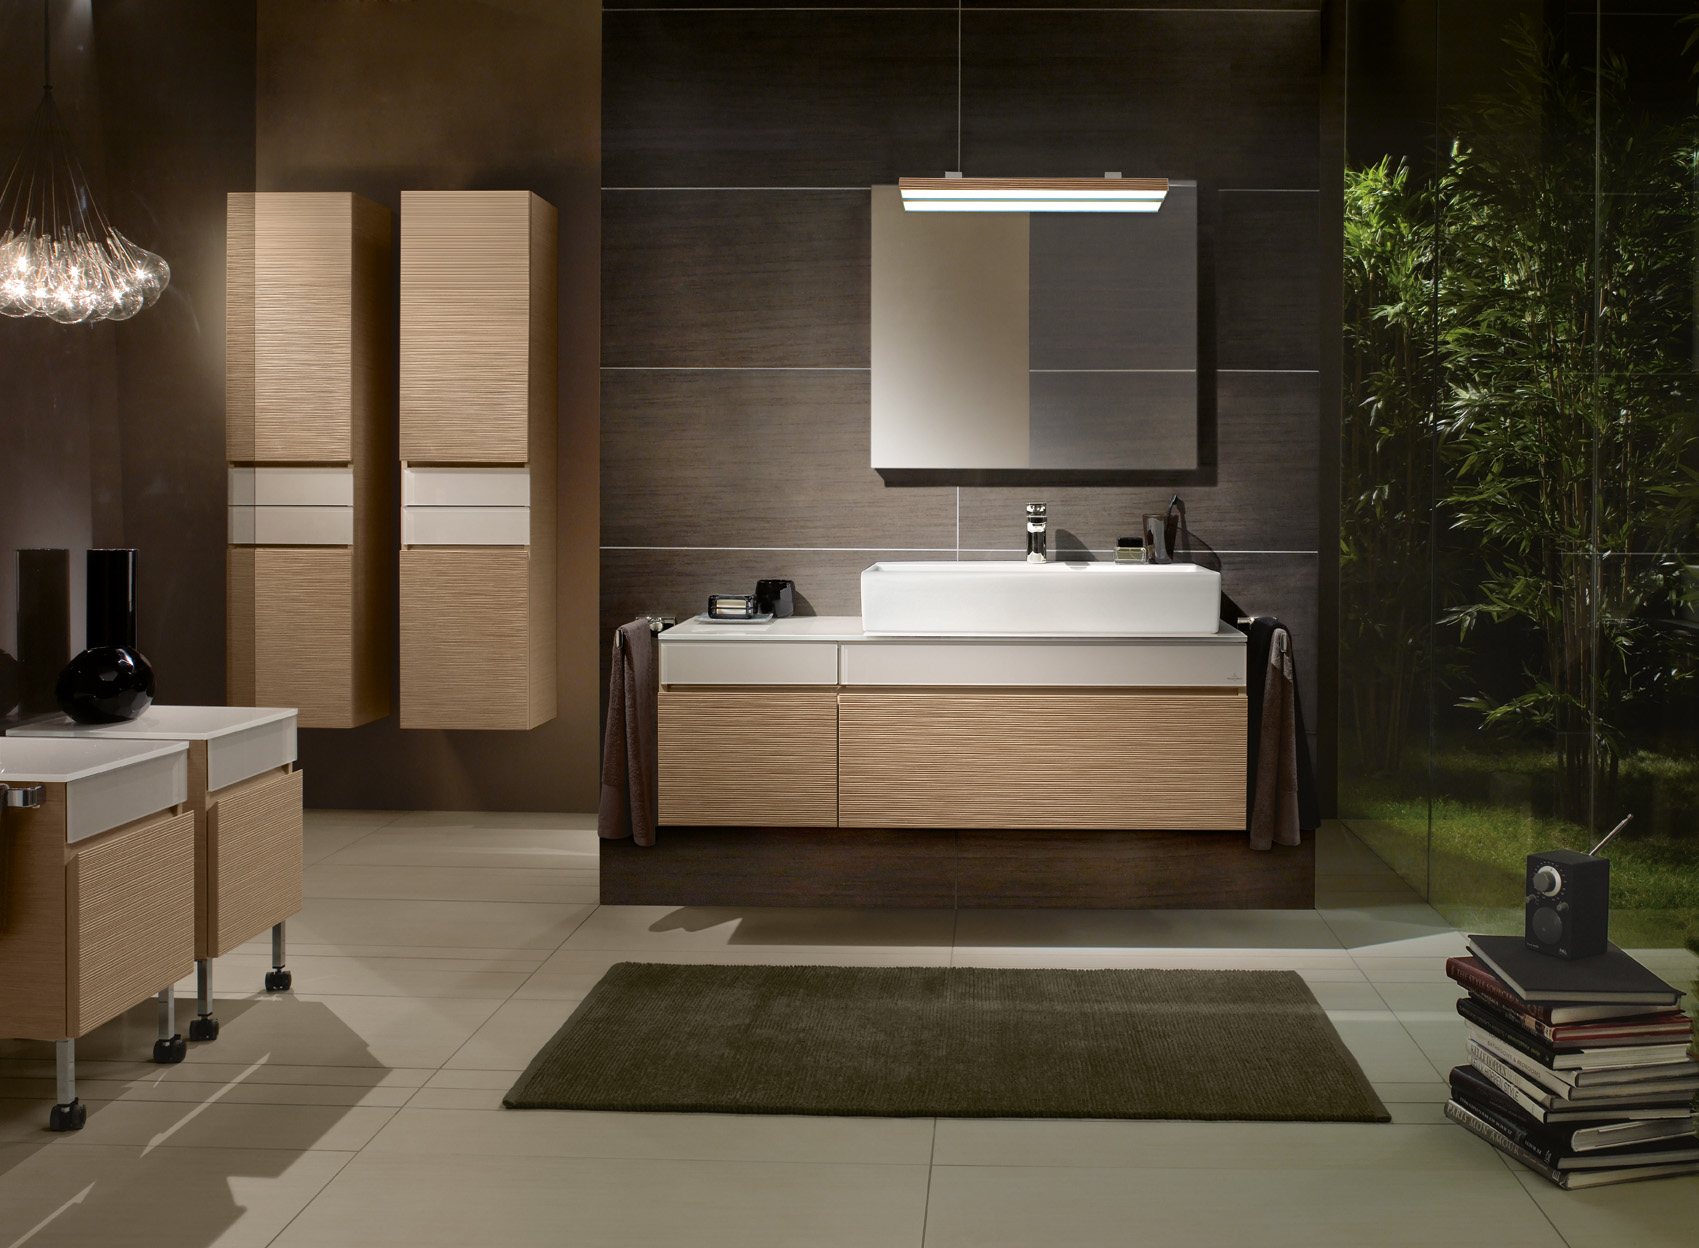 Villeroy boch uk bathroom kitchen tiles division for Bathrooms and kitchens